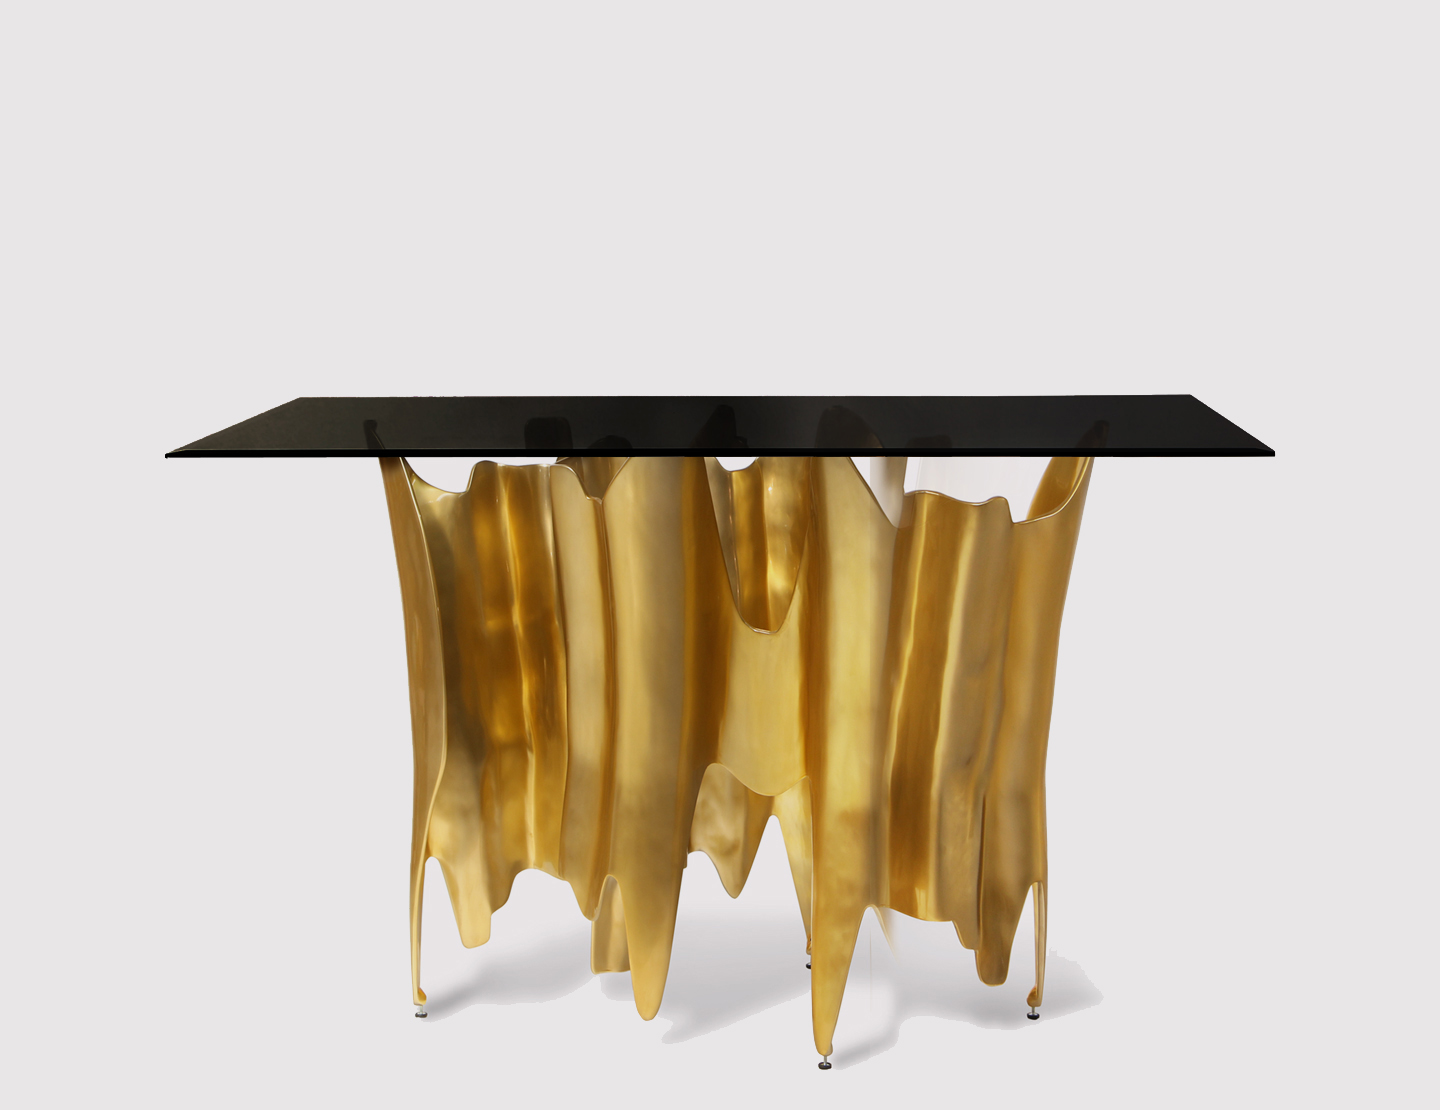 obssedia console luxury table koket zoom big gold accent dining patio garden rattan coffee side cloth inexpensive tables cordless lamps home goods sets round hammered metal